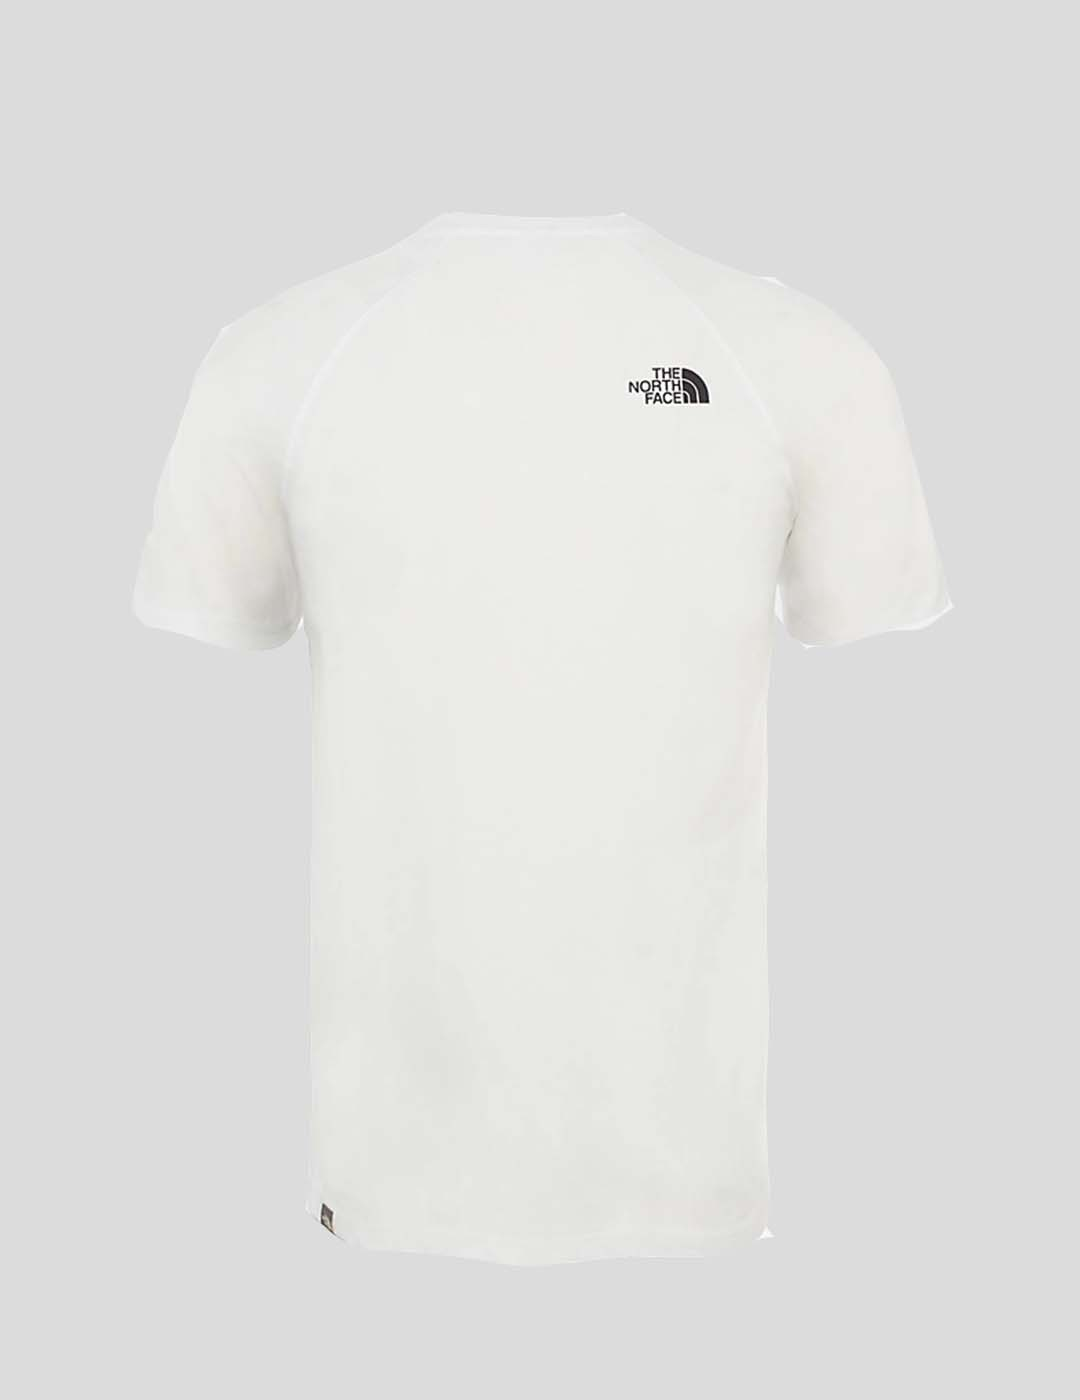 CAMISETA THE NORTH FACE S/S RAG RED BOX TEE TNF WHITE